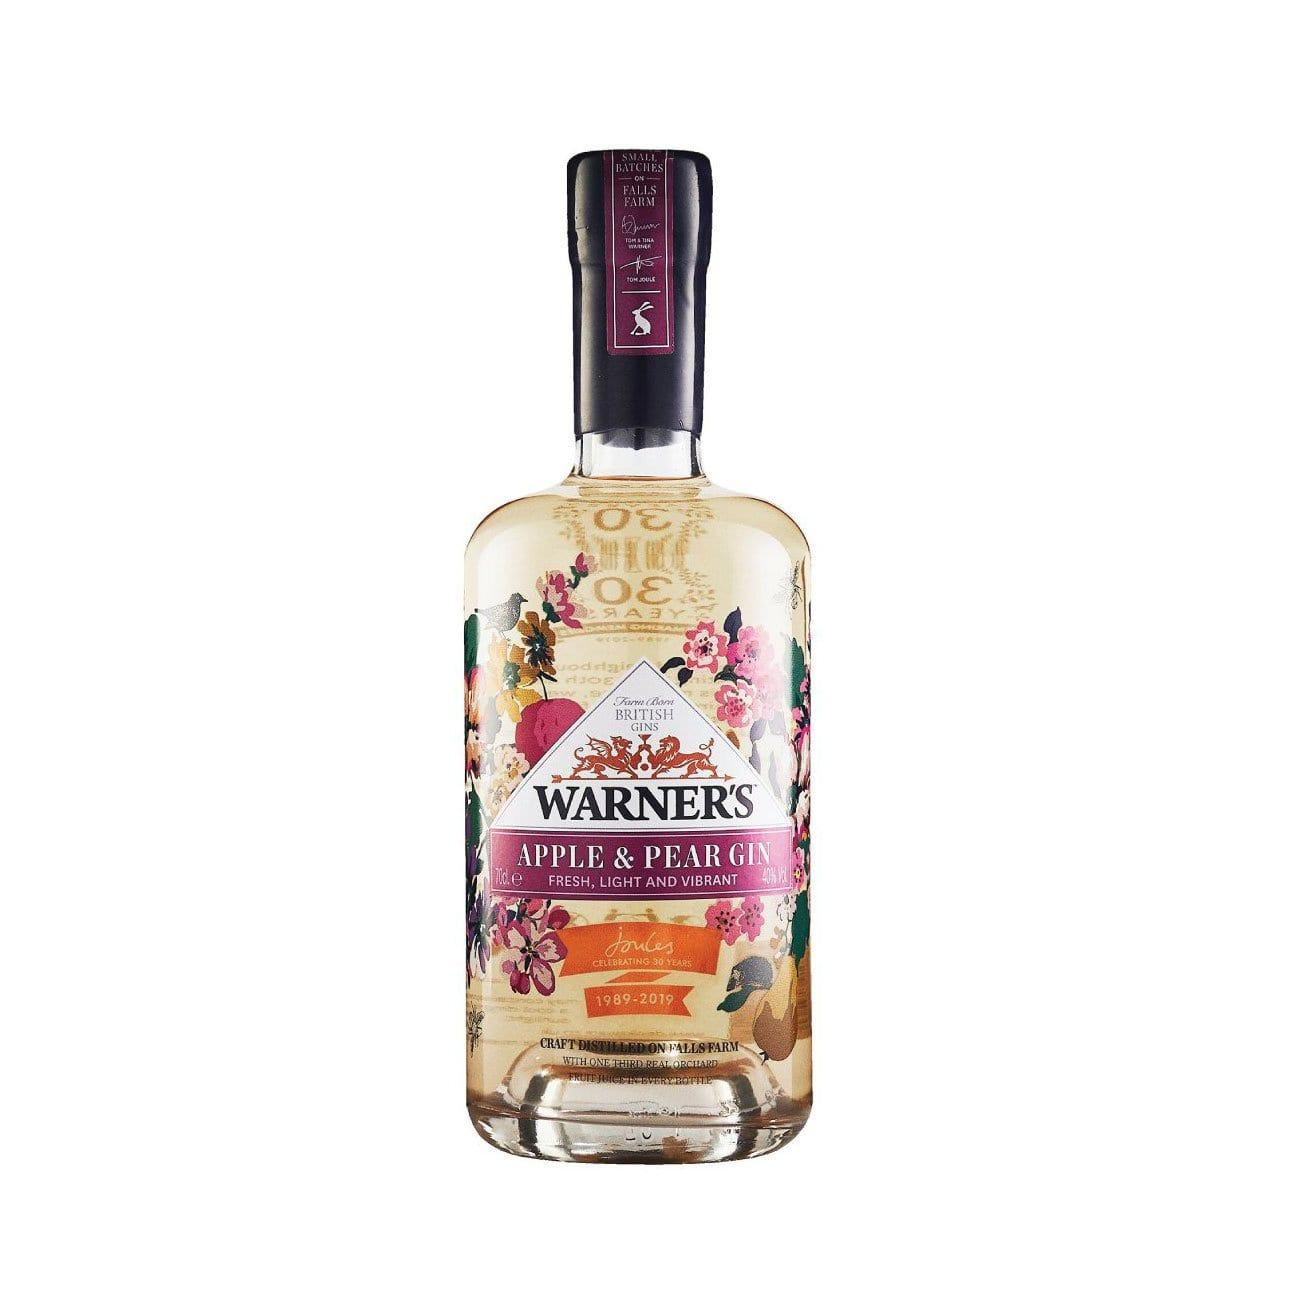 Warner's Apple and Pear Gin